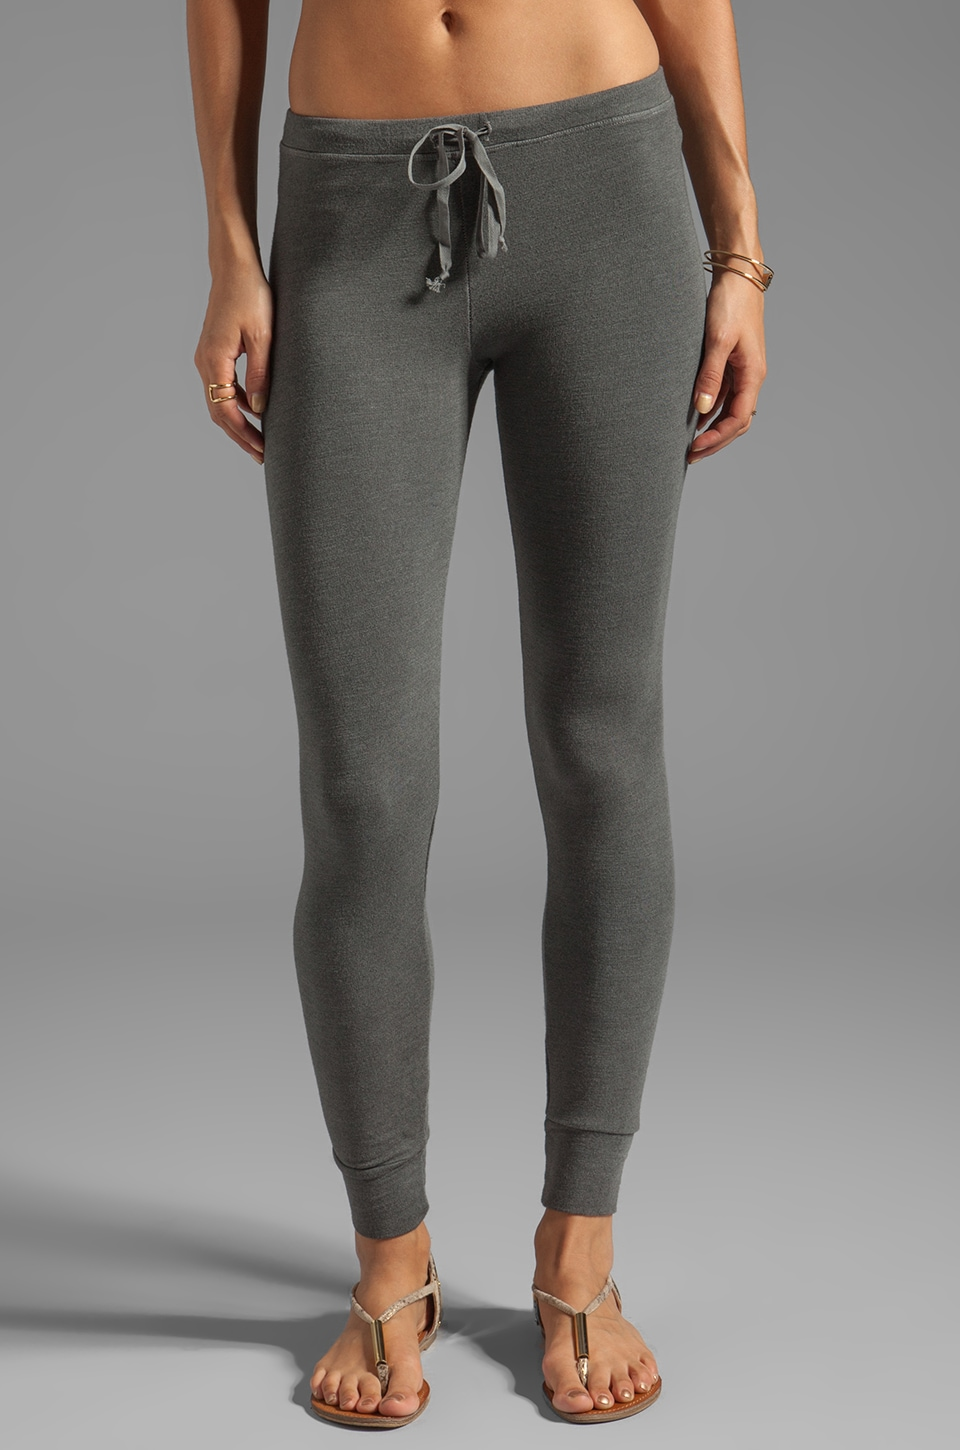 SUNDRY Skinny Sweatpants in Charcoal